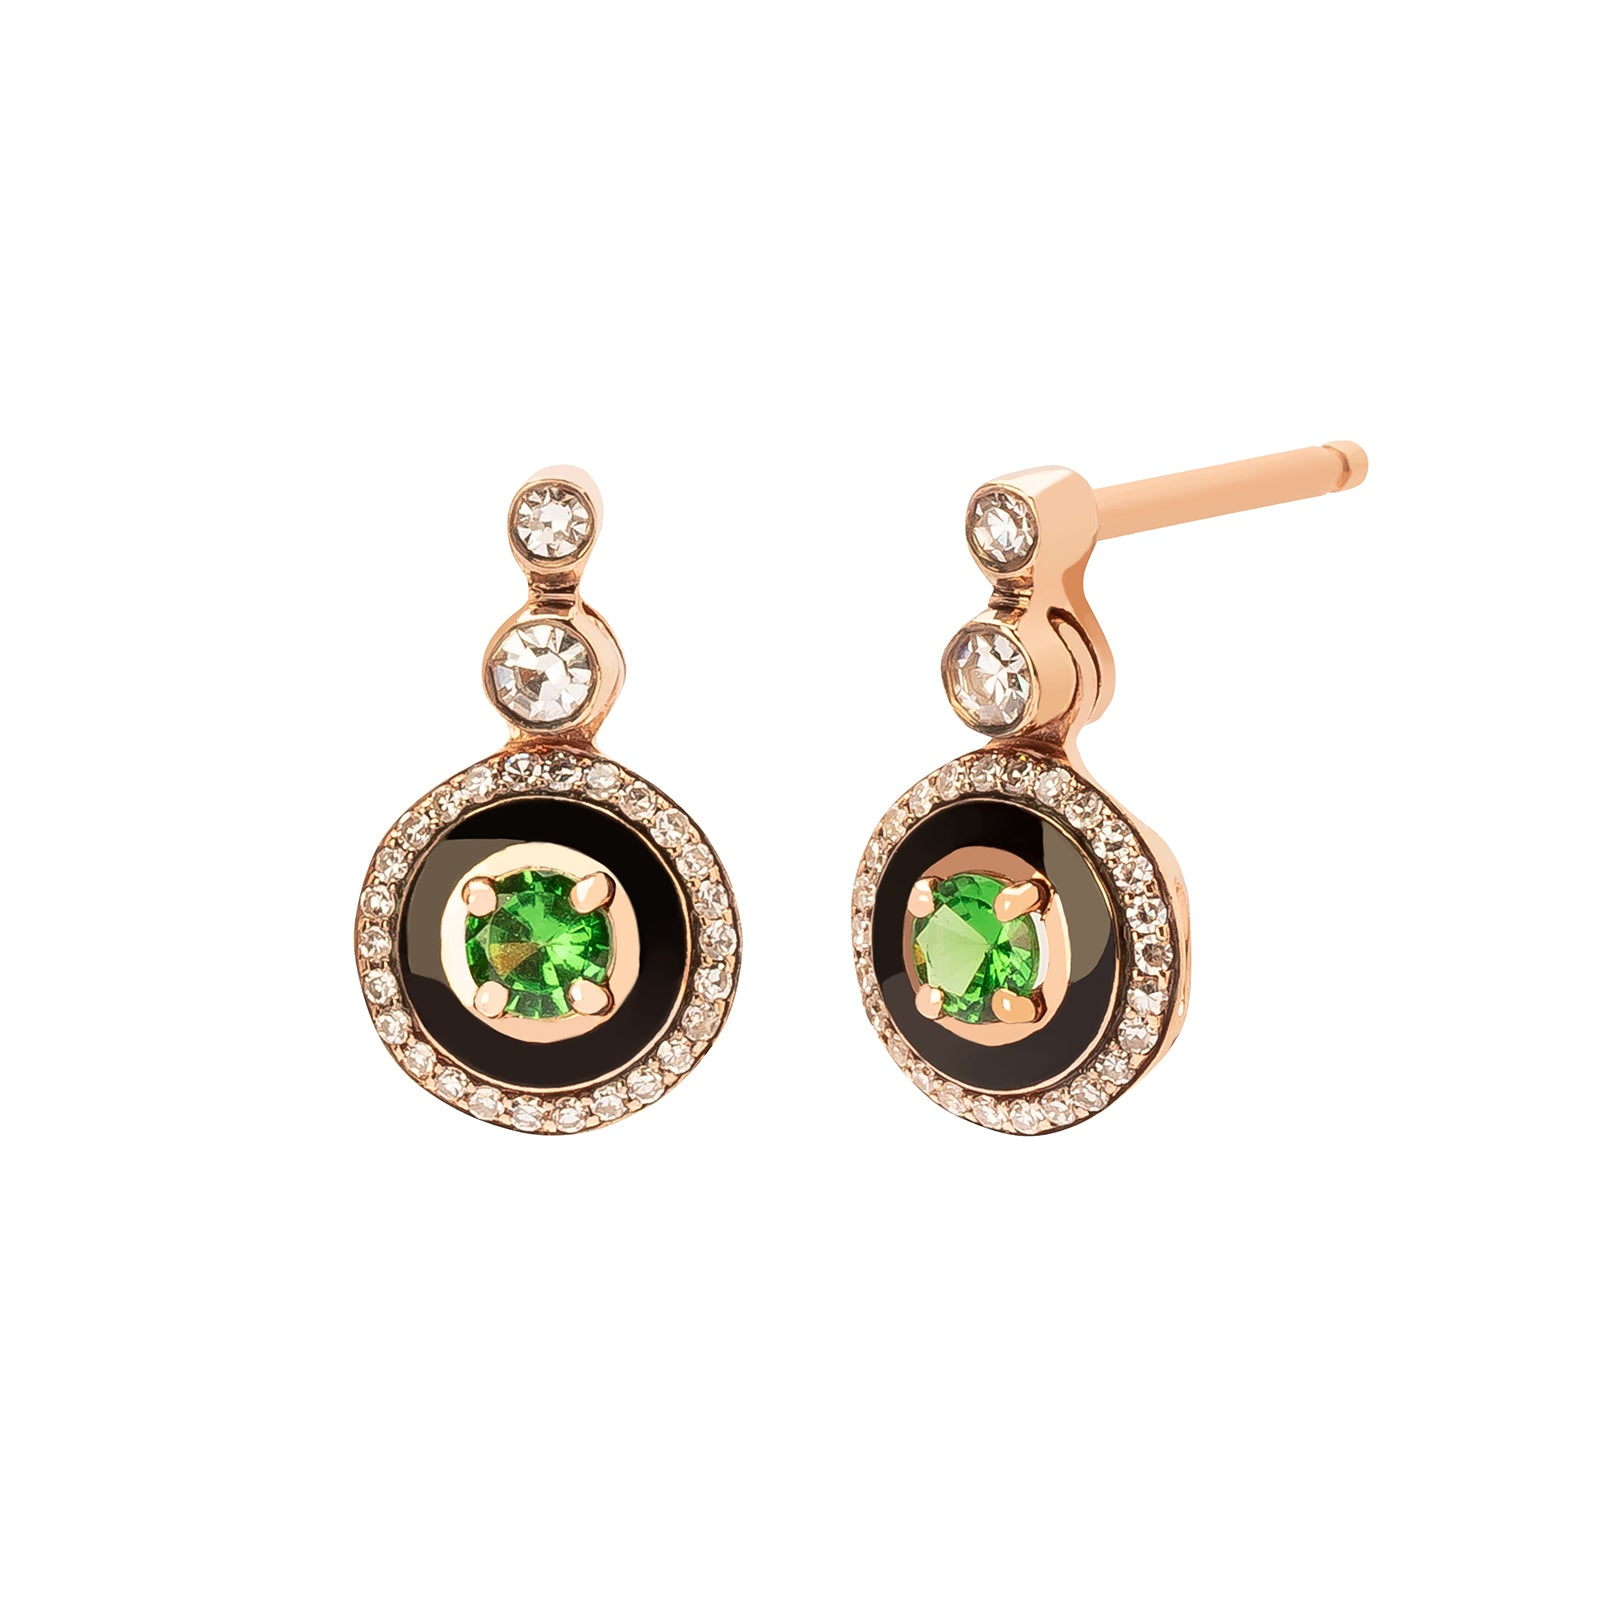 Selim Mouzannar Mina Tsavorite & Diamond Drop Earrings - Rose Gold - Earrings - Broken English Jewelry